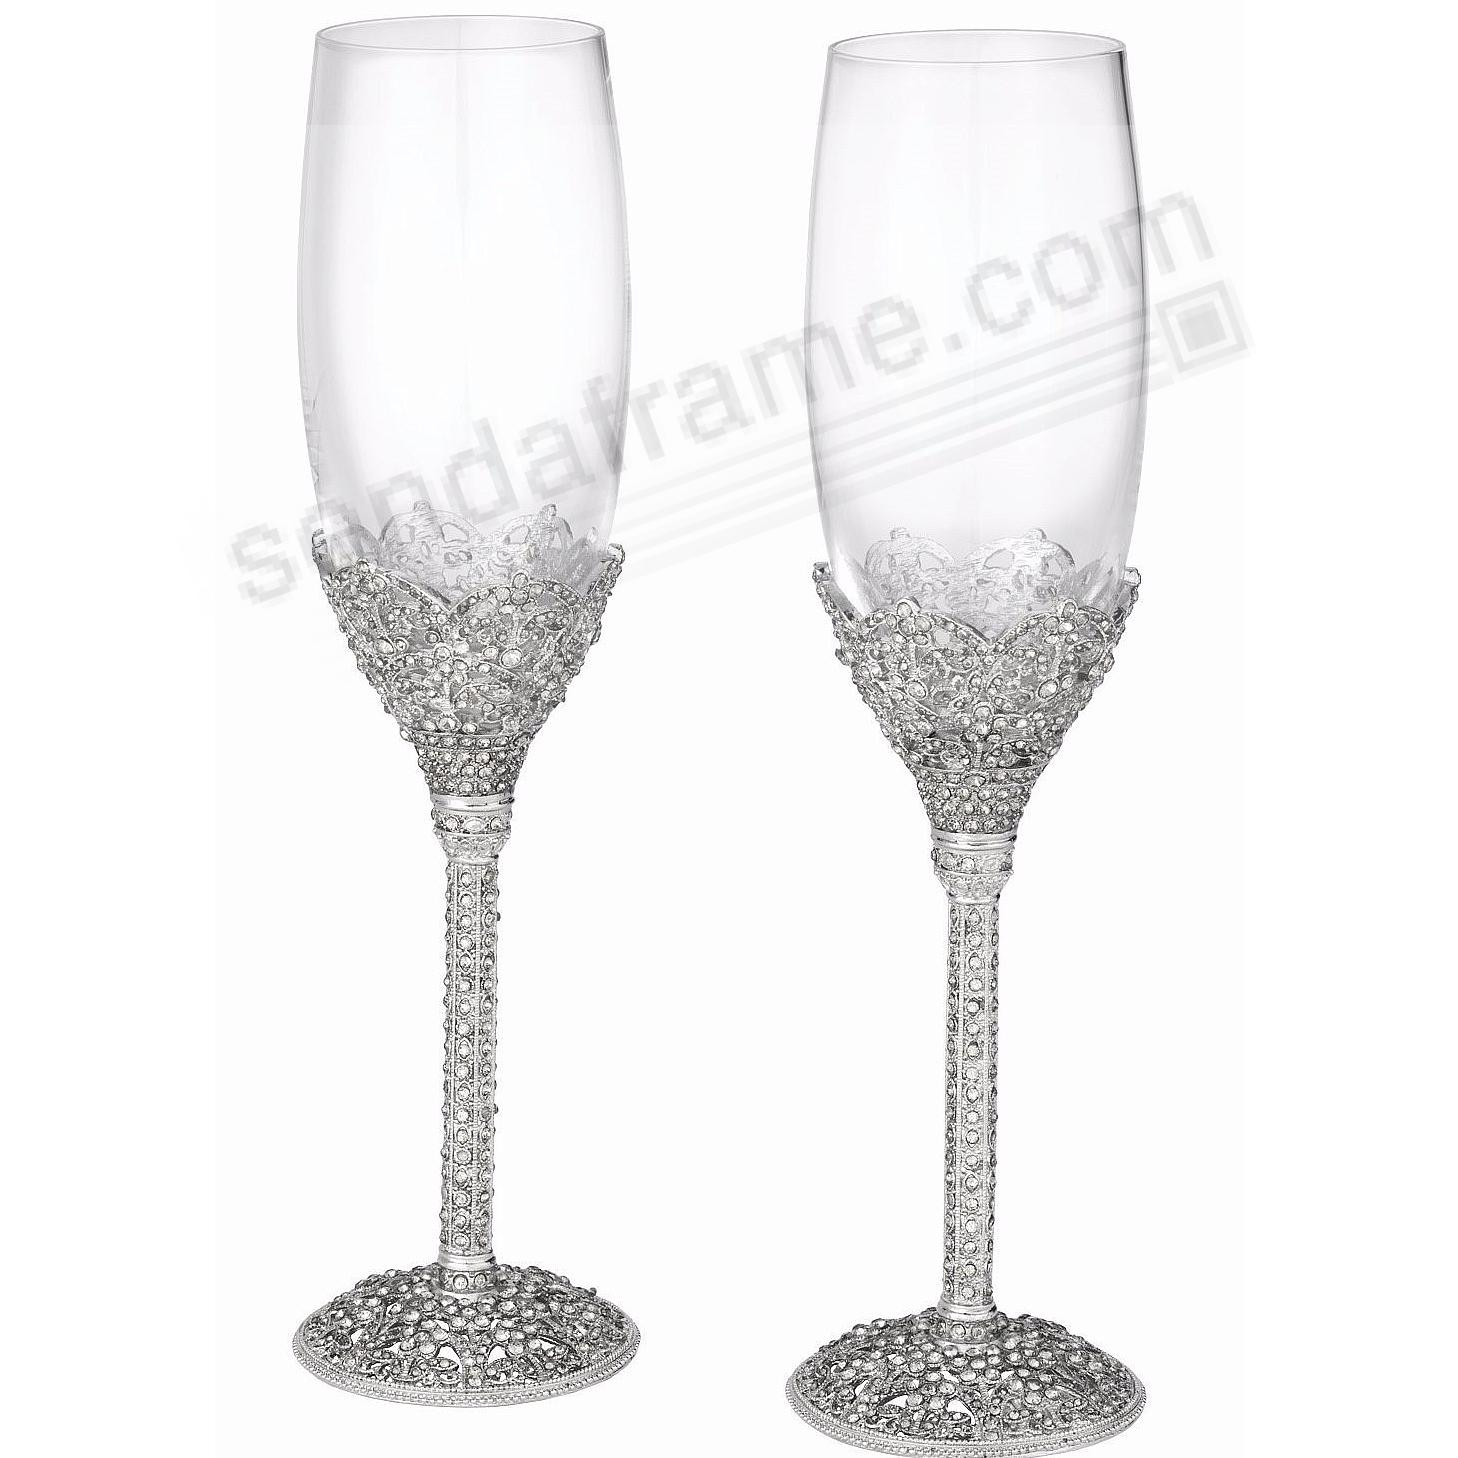 Sinclair champagne flutes 7oz pair by olivia riegel picture sinclair champagne flutes 7oz pair by olivia riegel picture frames photo albums personalized and engraved digital photo gifts sendaframe jeuxipadfo Gallery